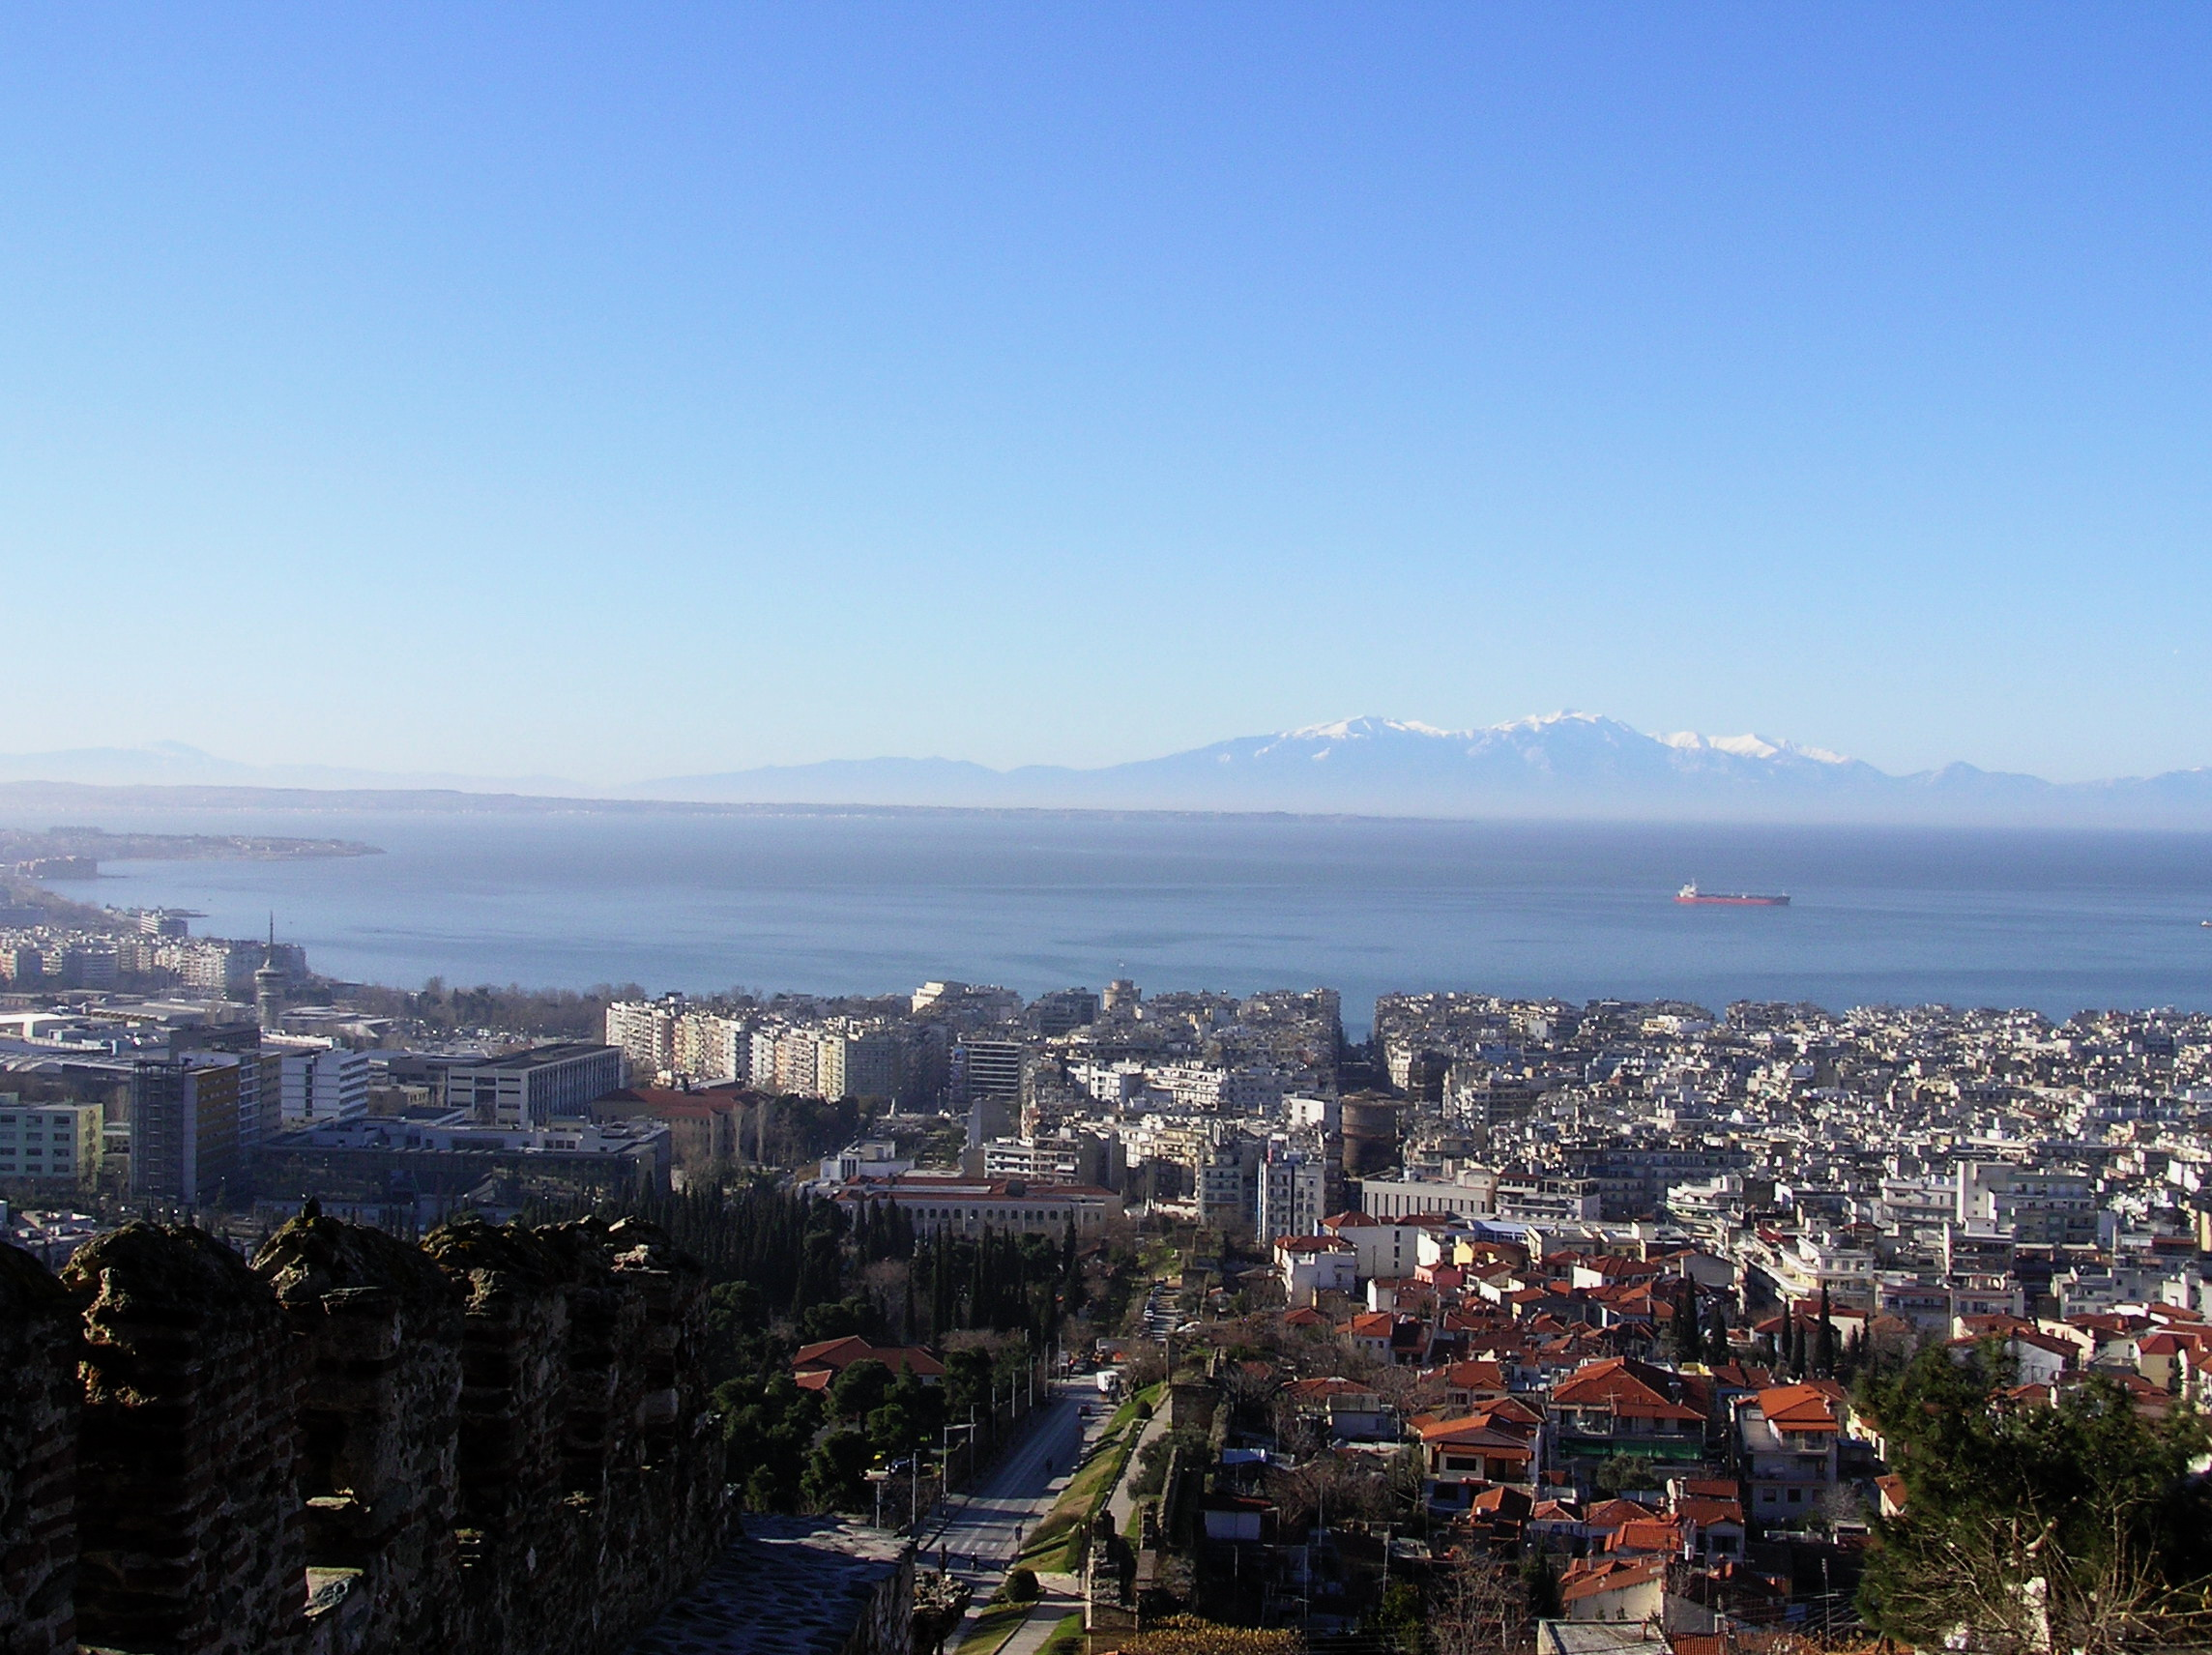 File:Thessaloniki Olympus.jpg - Wikimedia Commons